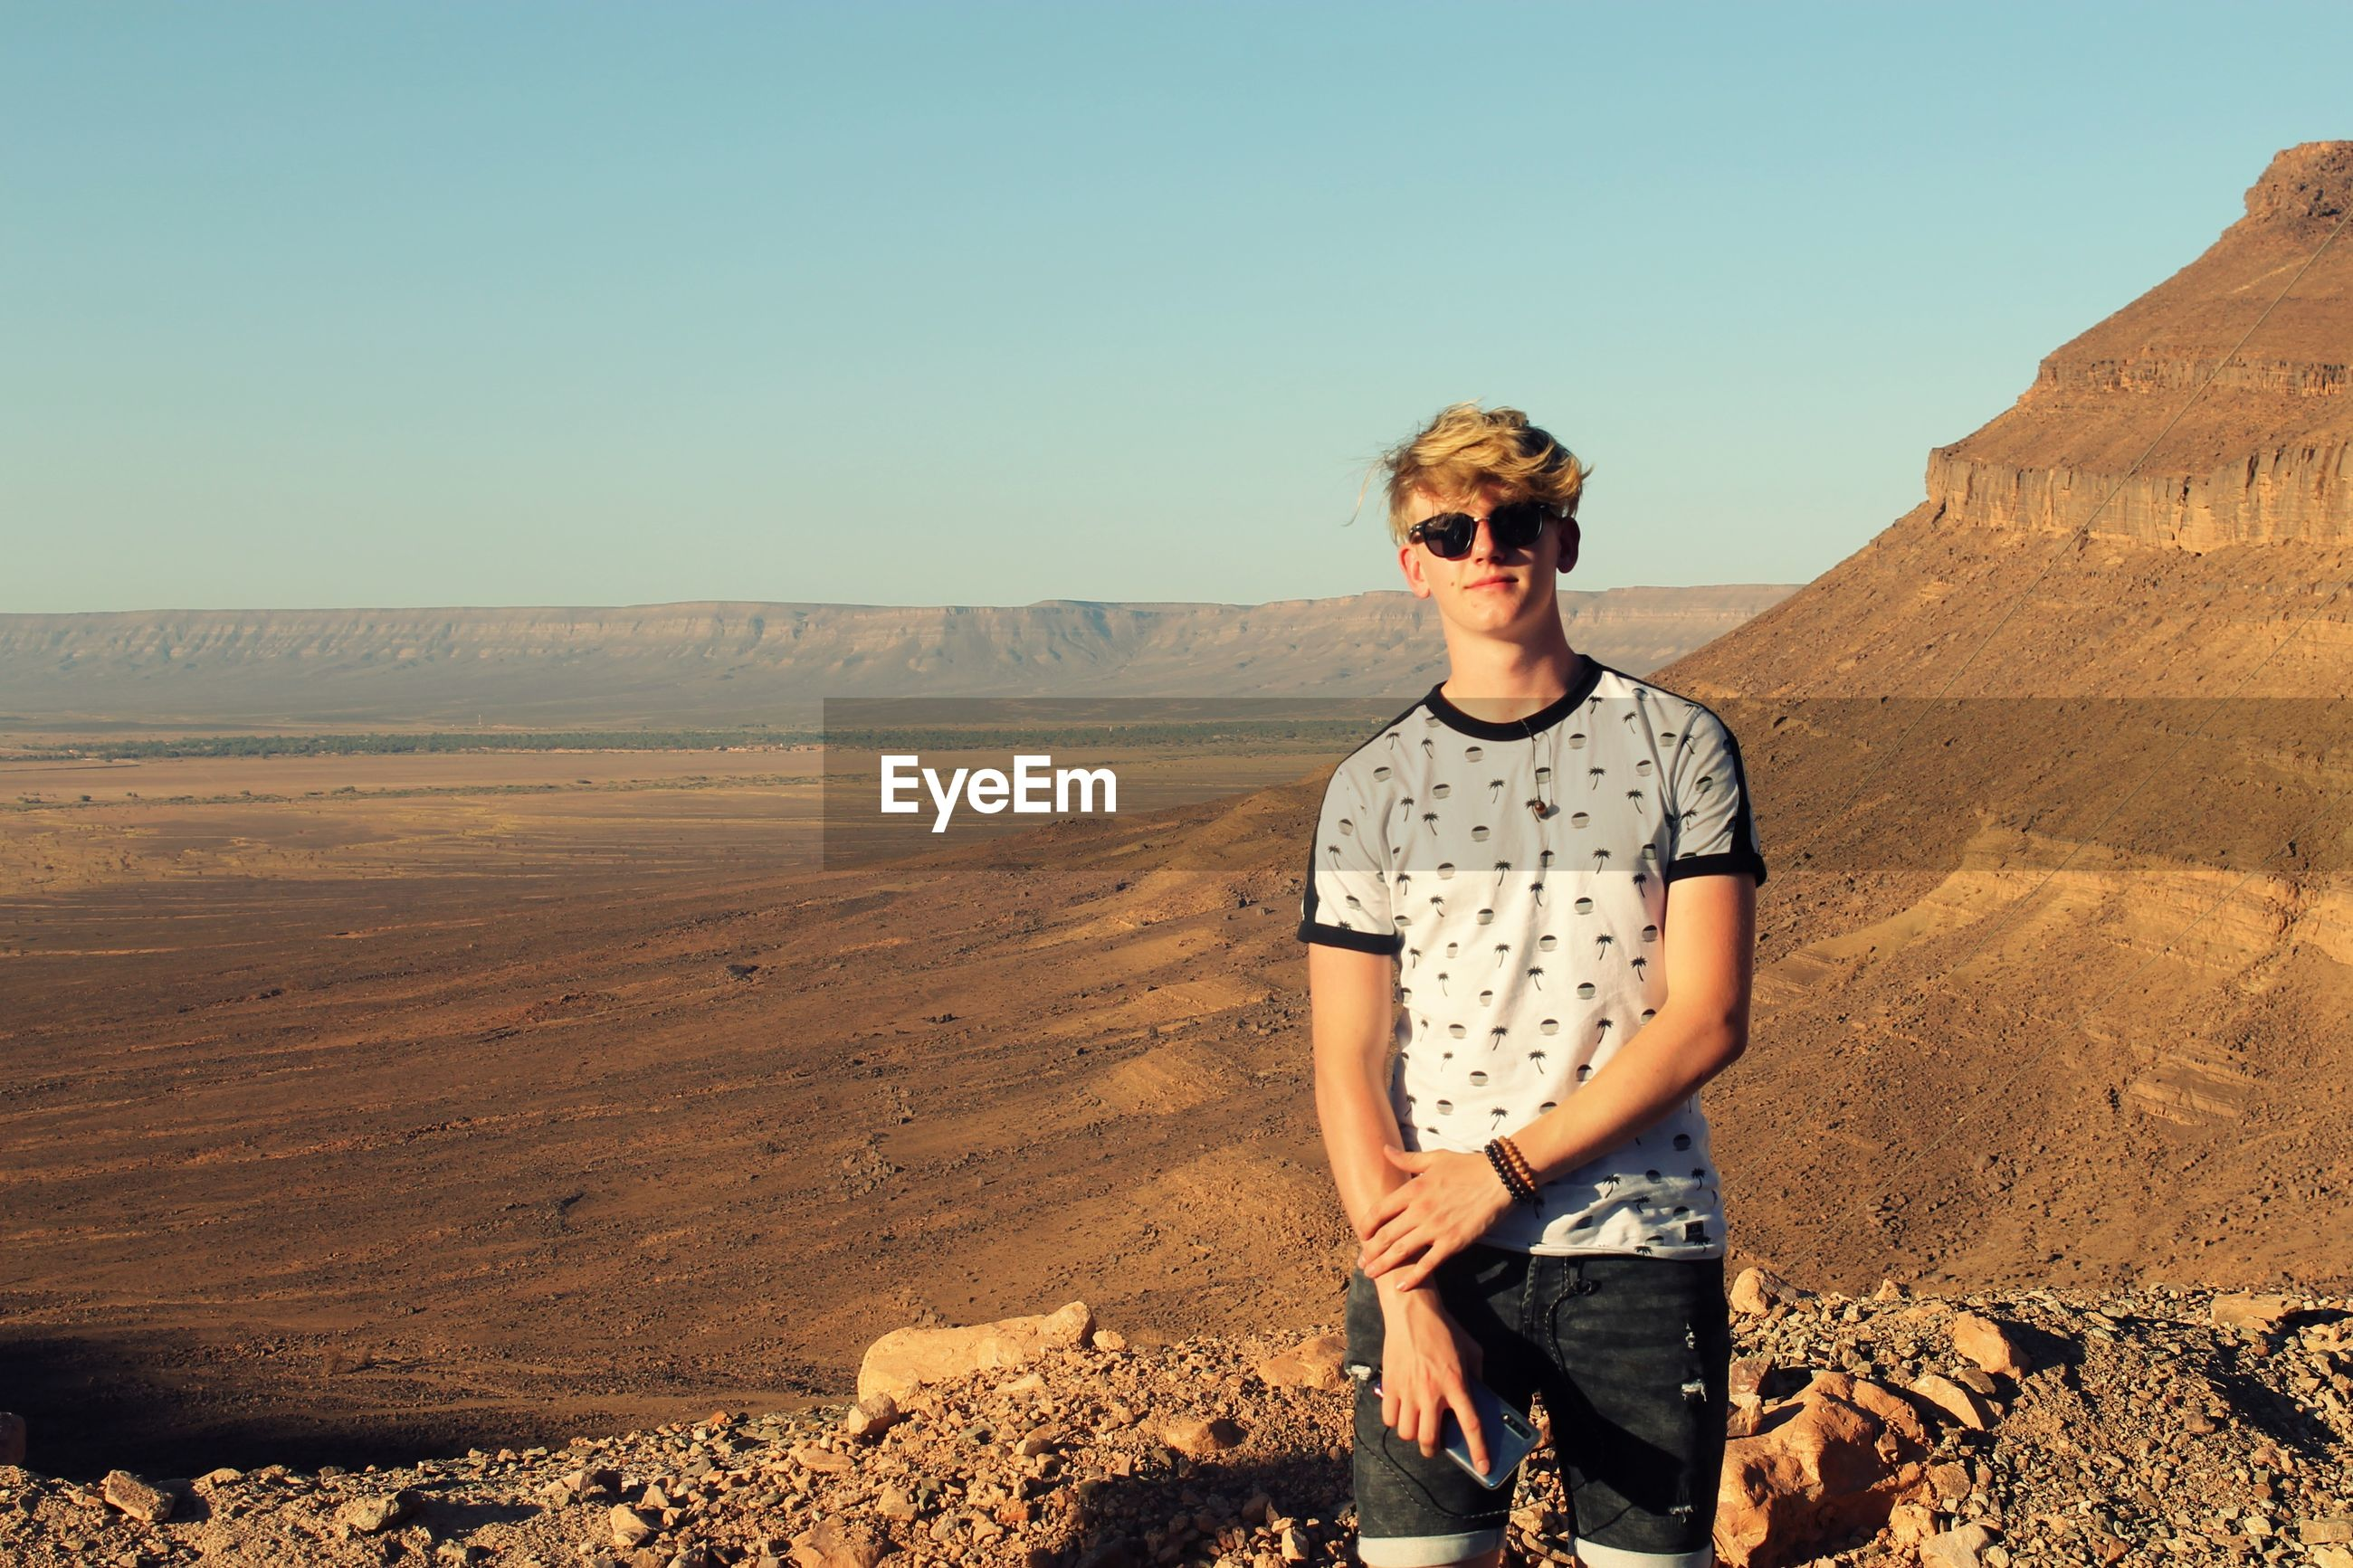 Boy wearing sunglasses at desert against clear sky